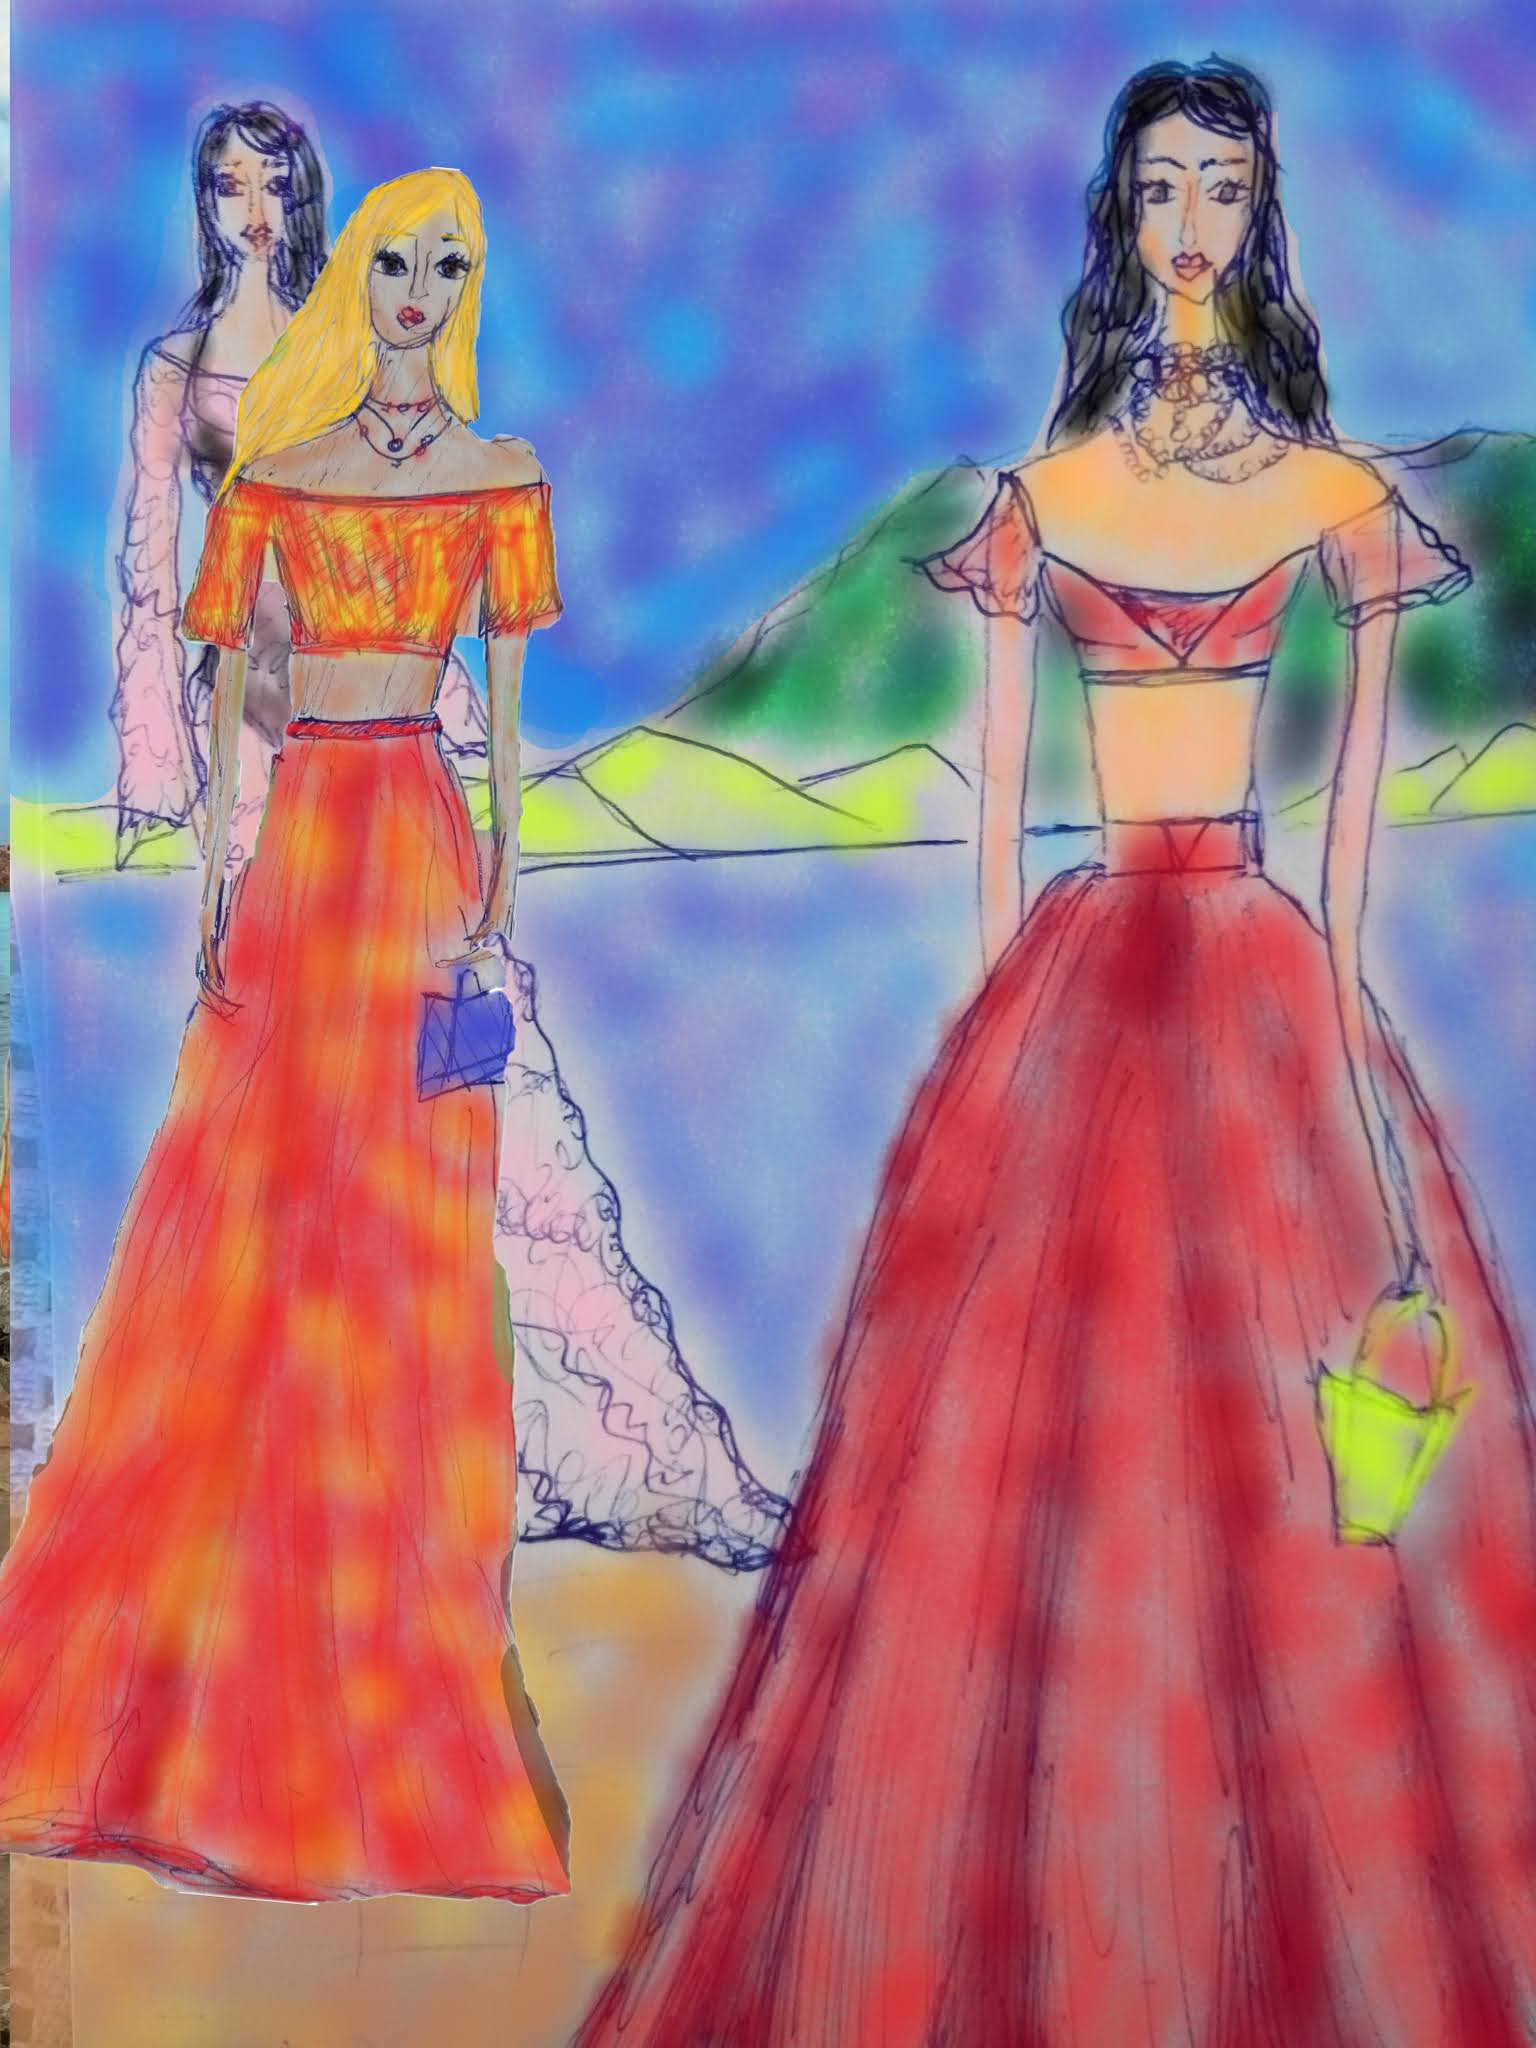 #modaodaradosti #fashionillustrationfriday